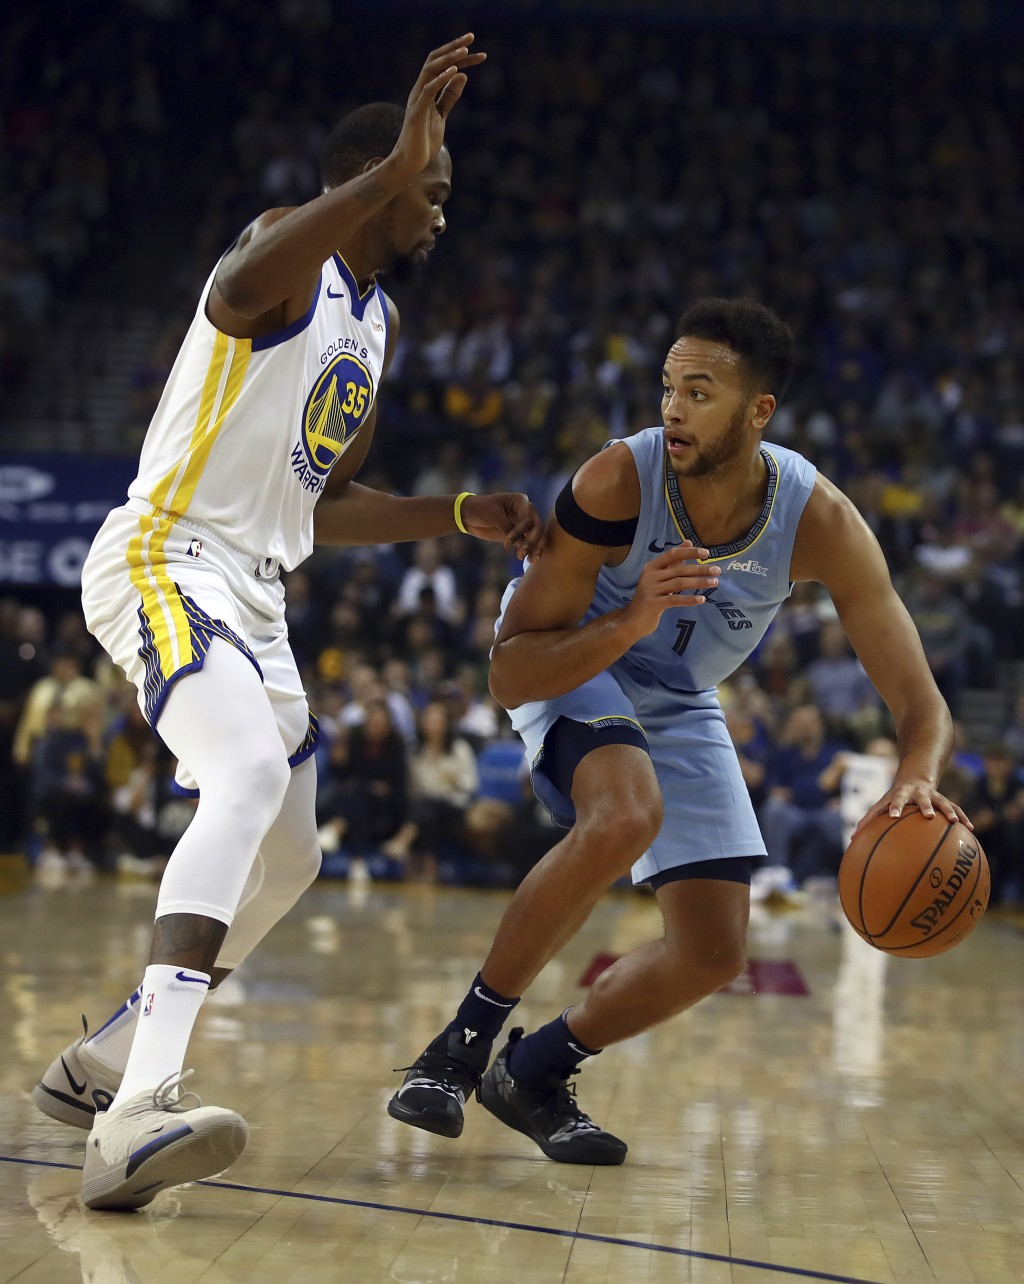 Memphis Grizzlies' Kyle Anderson, right, drives the ball against Golden State Warriors' Kevin Durant (35) during the first half of an NBA basketball g